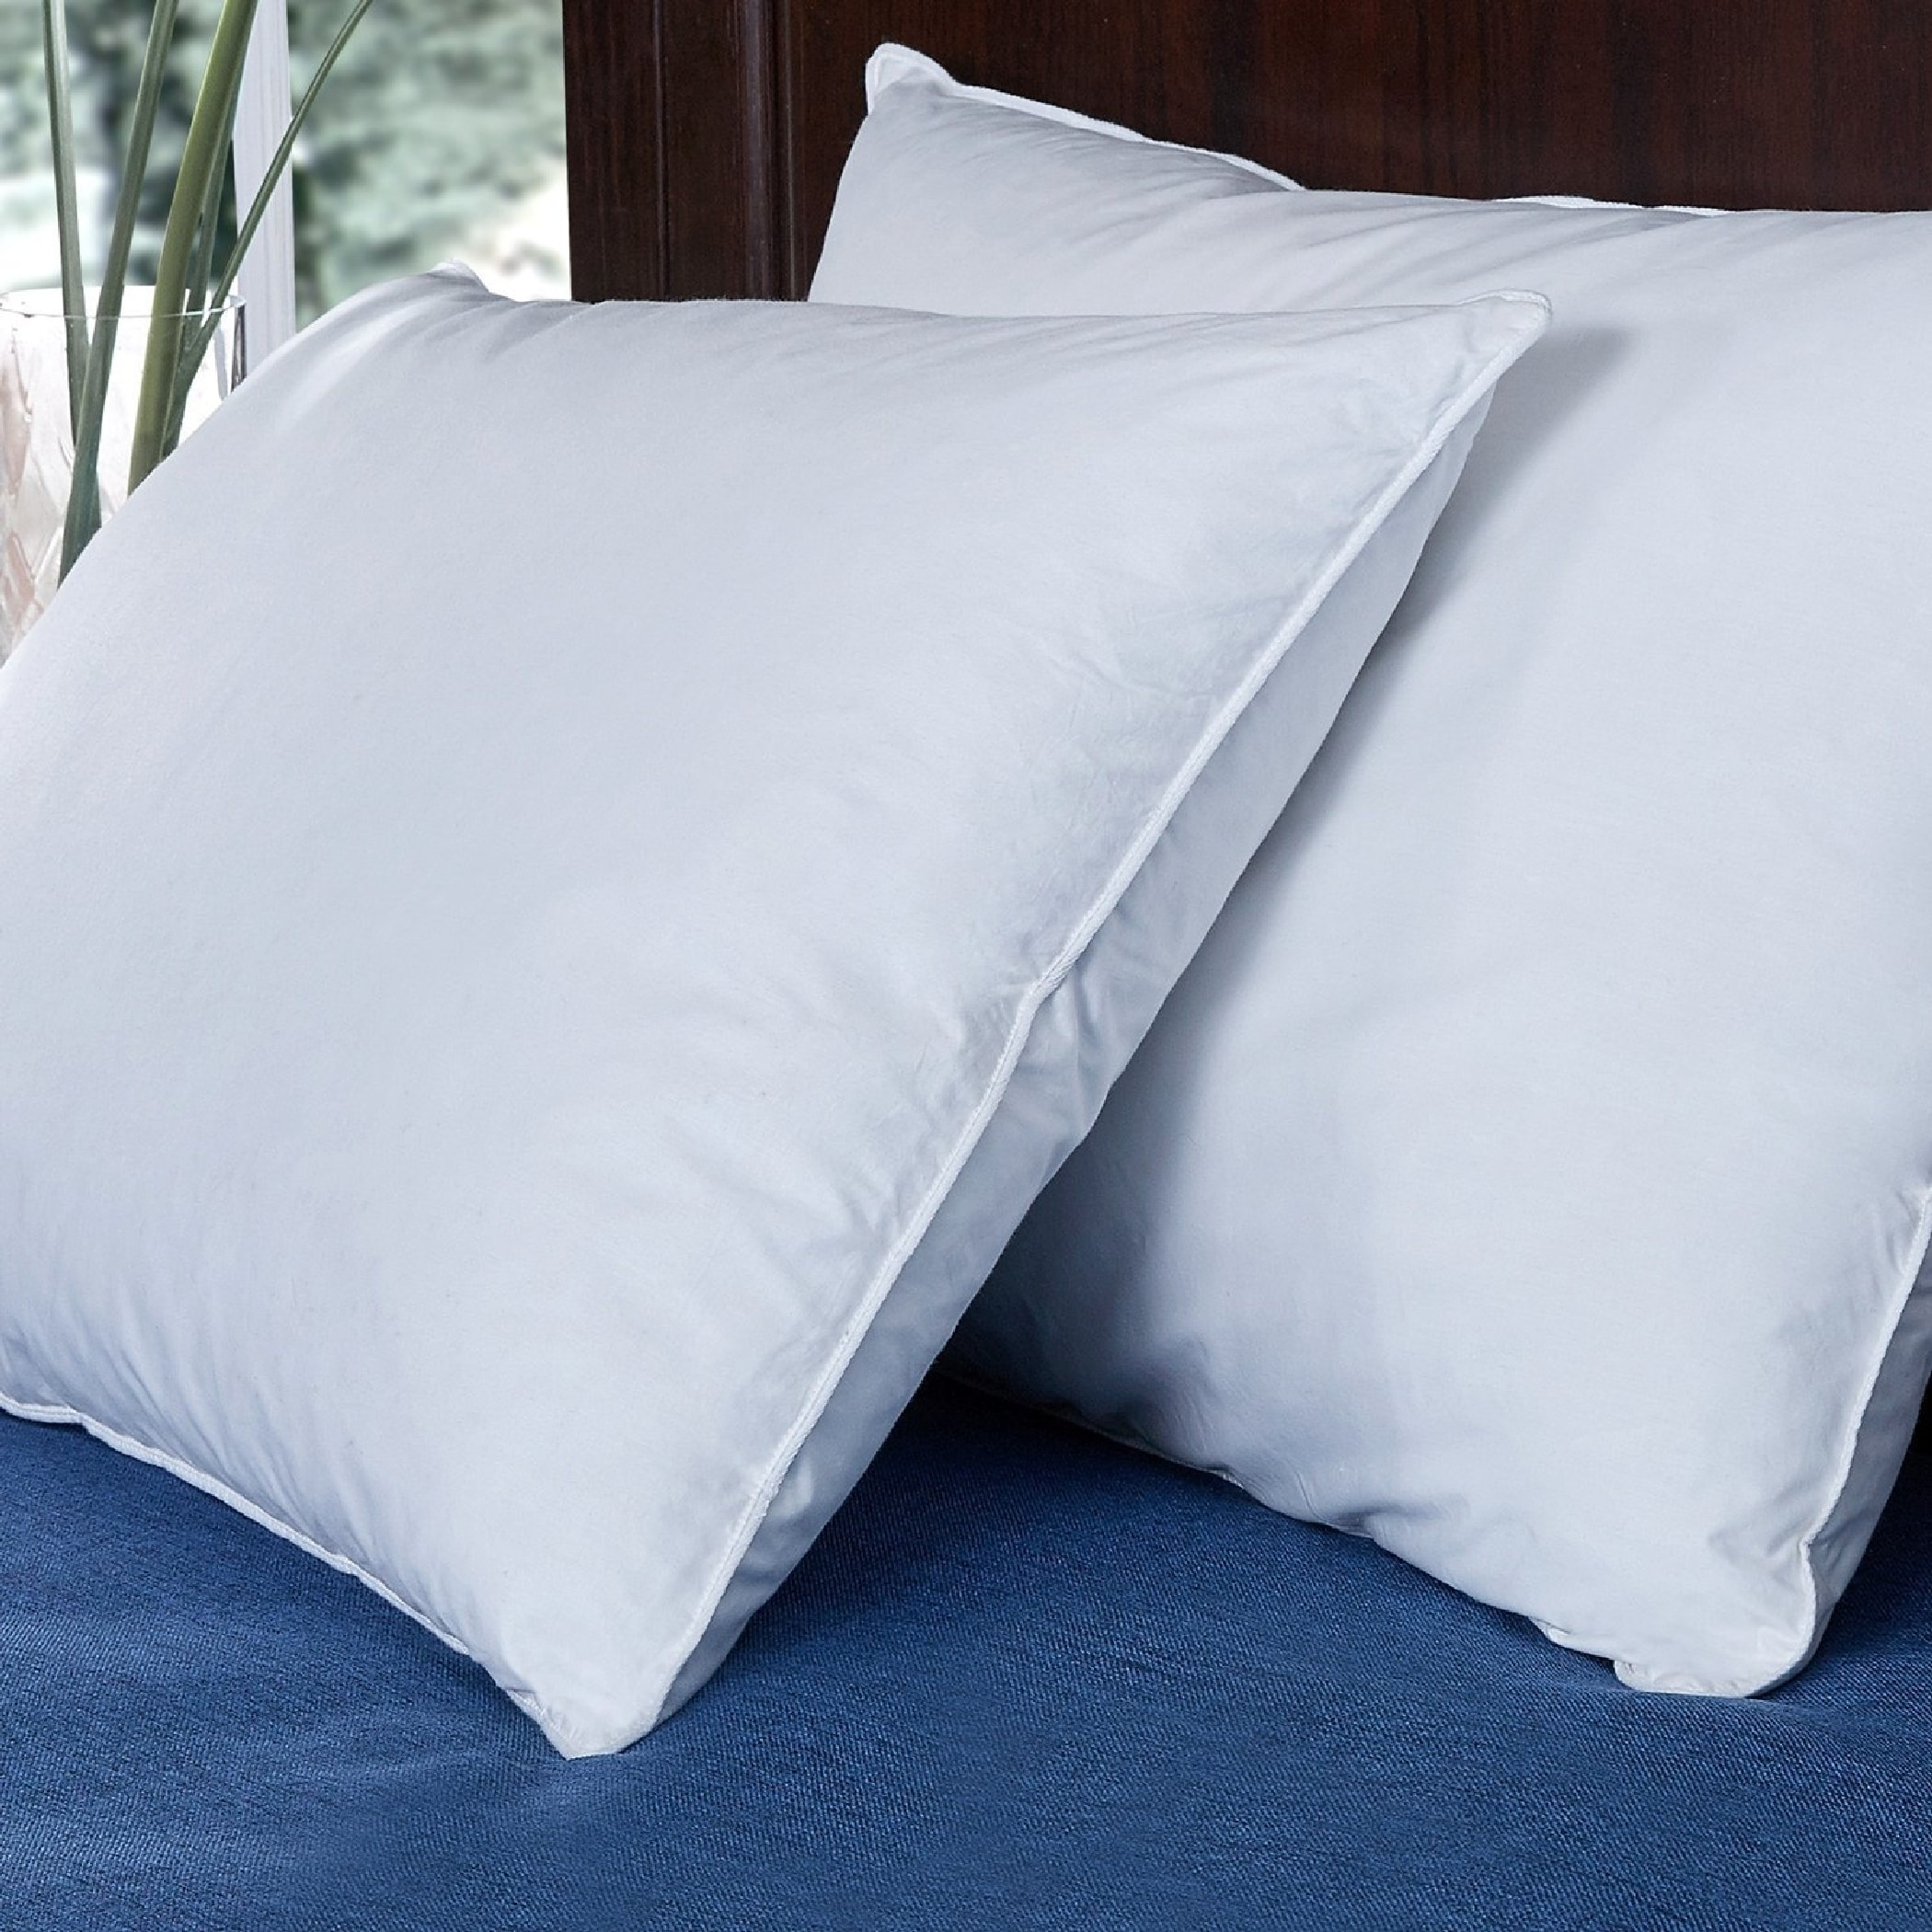 St. James Home  Duck Feather Bed Pillow (Set of 2) - White